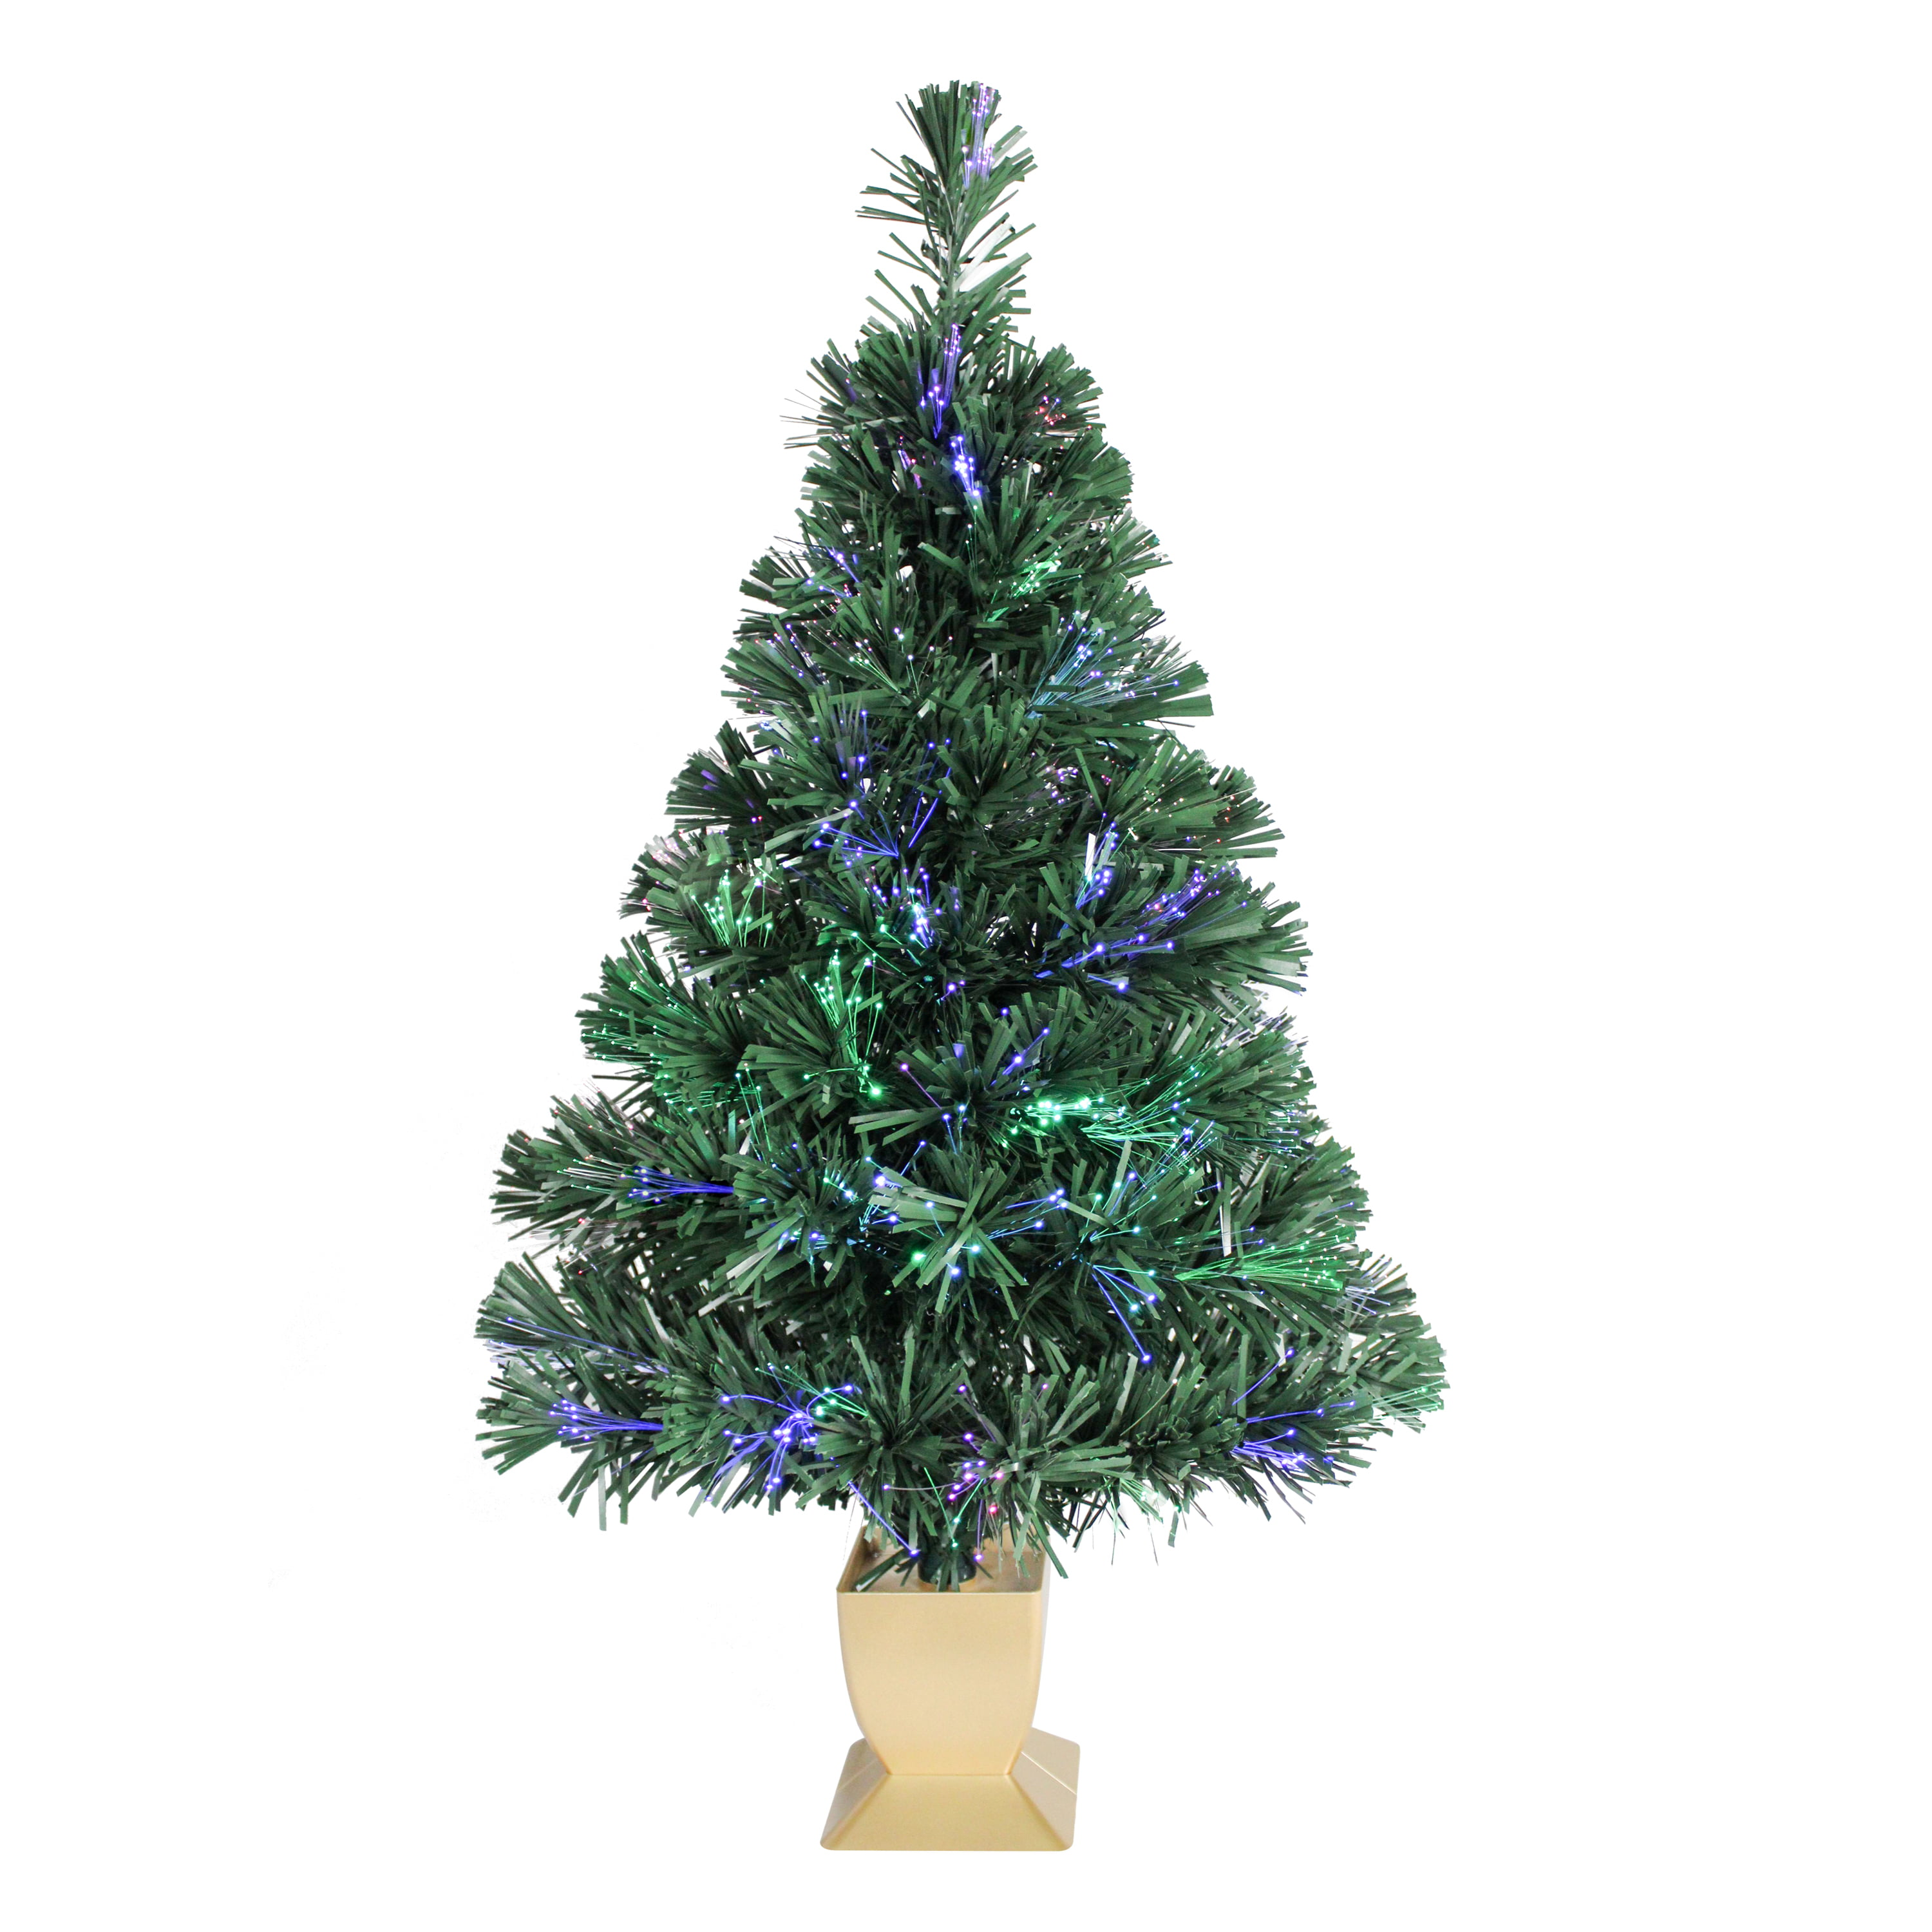 Holiday Time Fiber Optic Concord Christmas Tree 32 in, Green